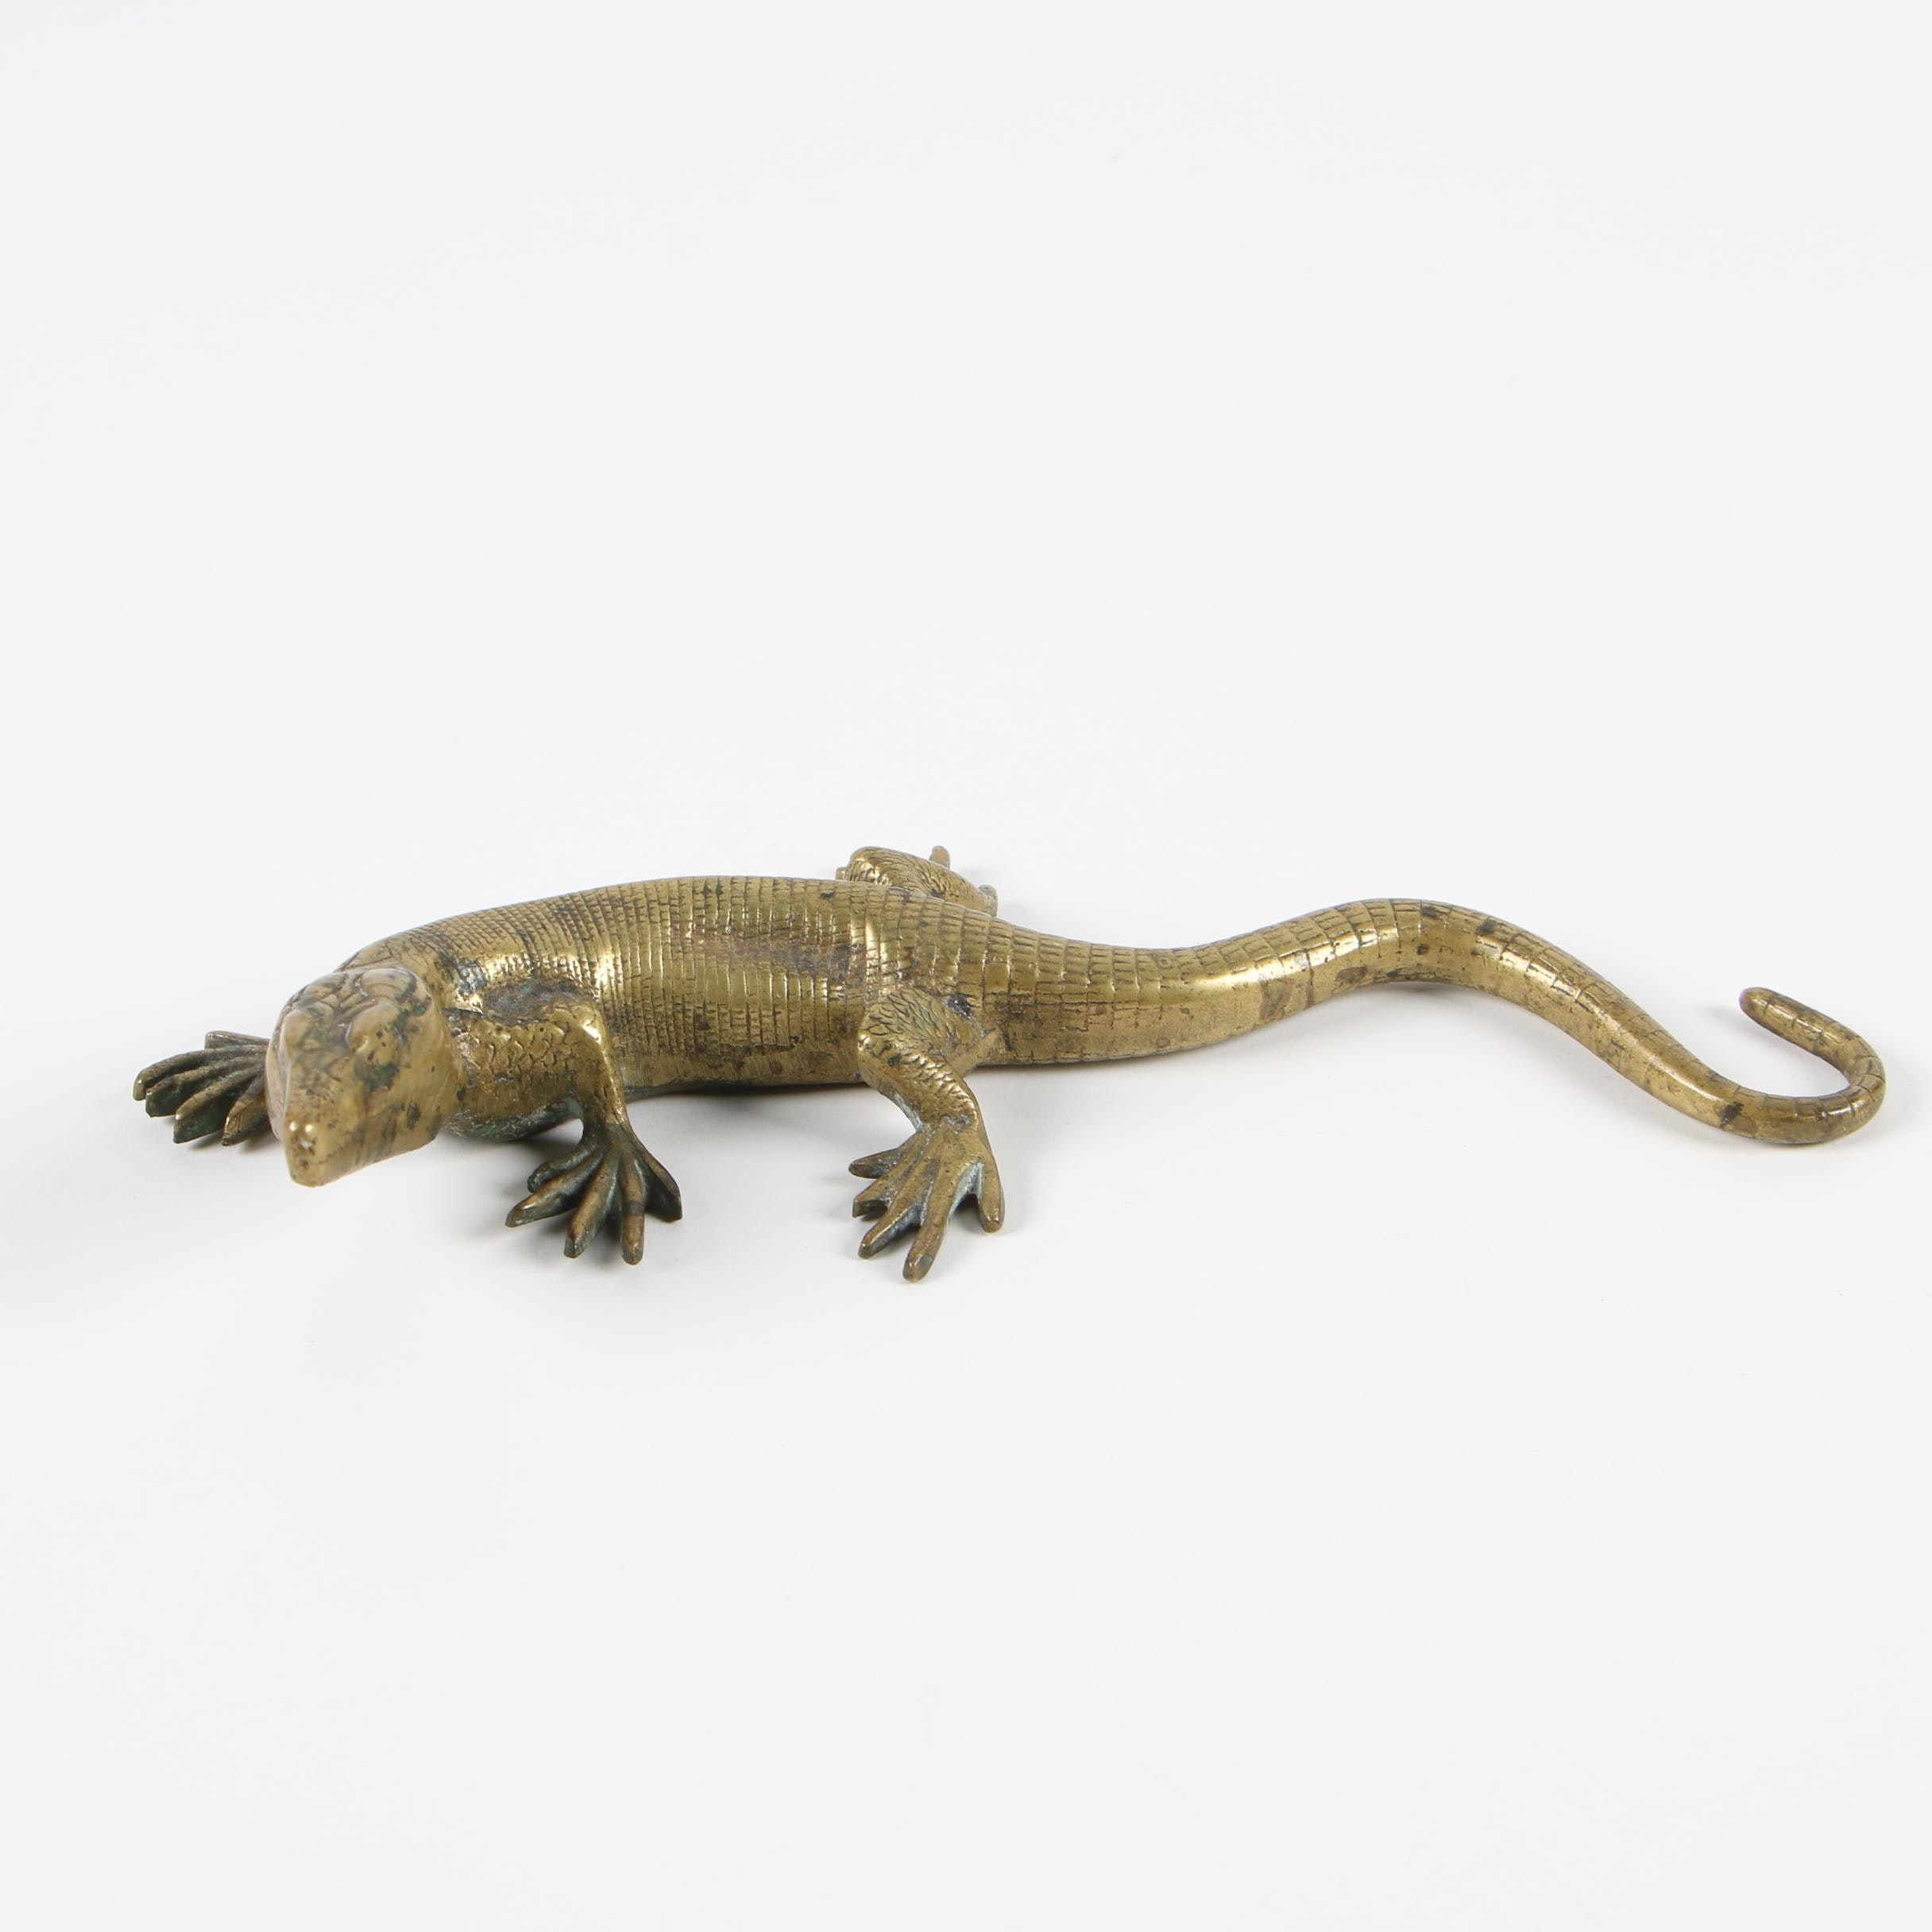 Cast Brass Lizard Figurine, 20th Century